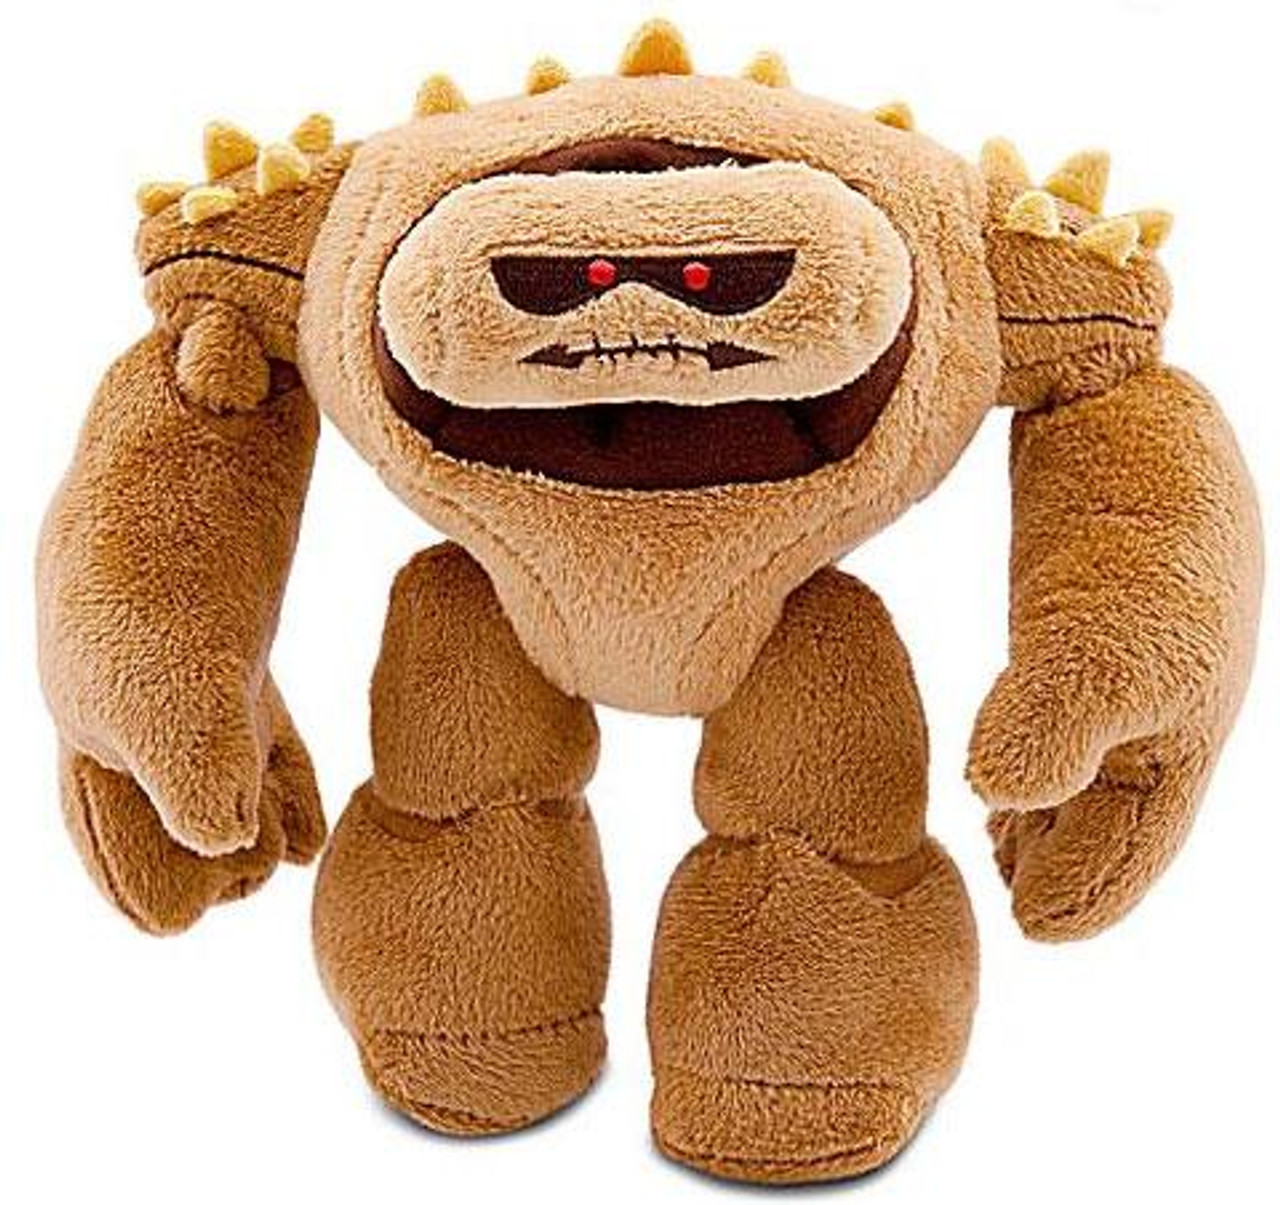 Disney Toy Story 3 Chunk Exclusive 7-Inch Plush